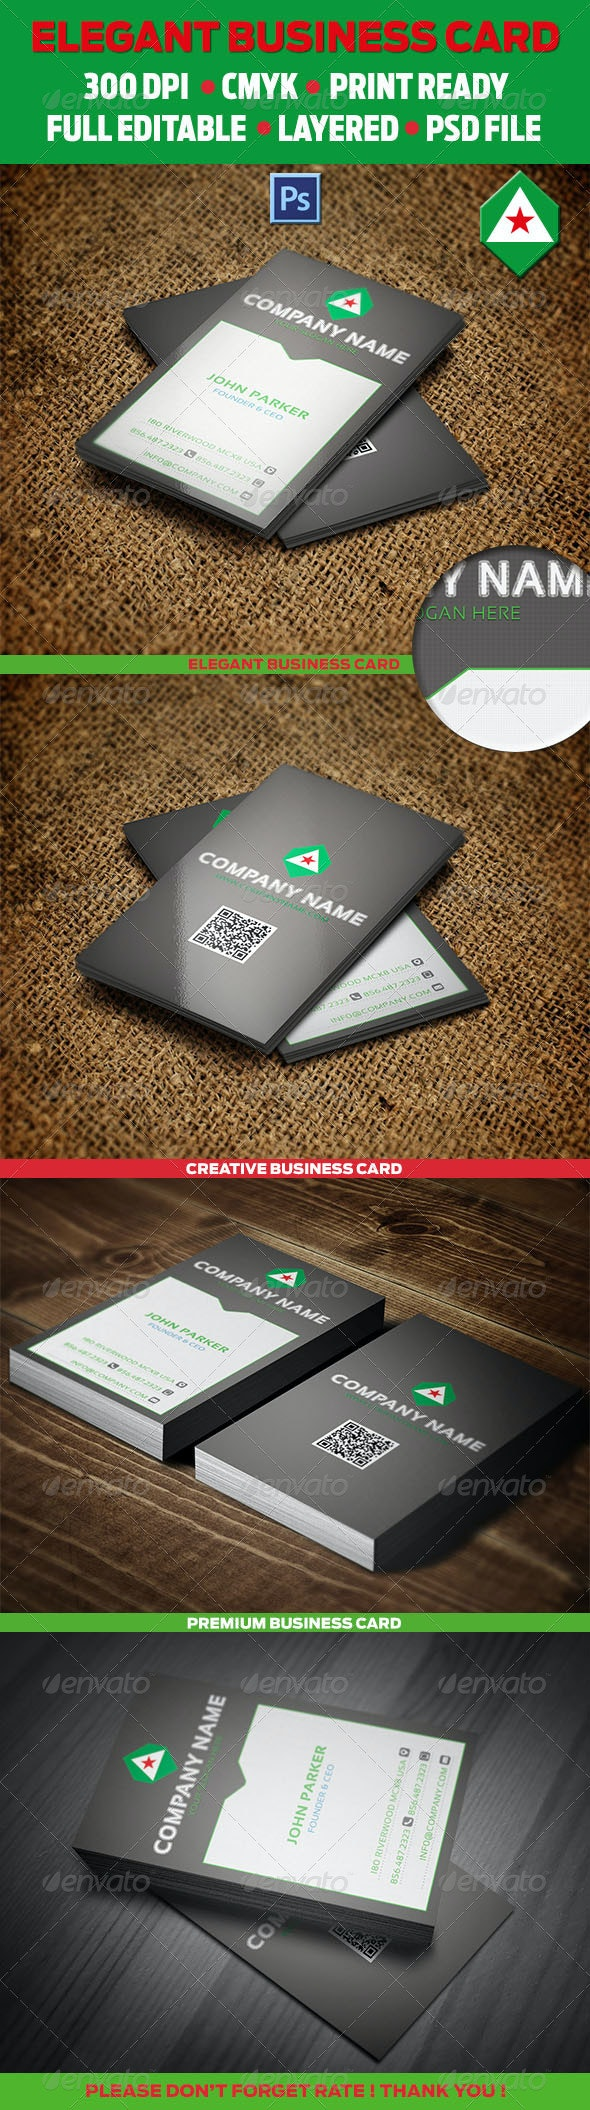 Corporate Business Card 10 - Creative Business Cards